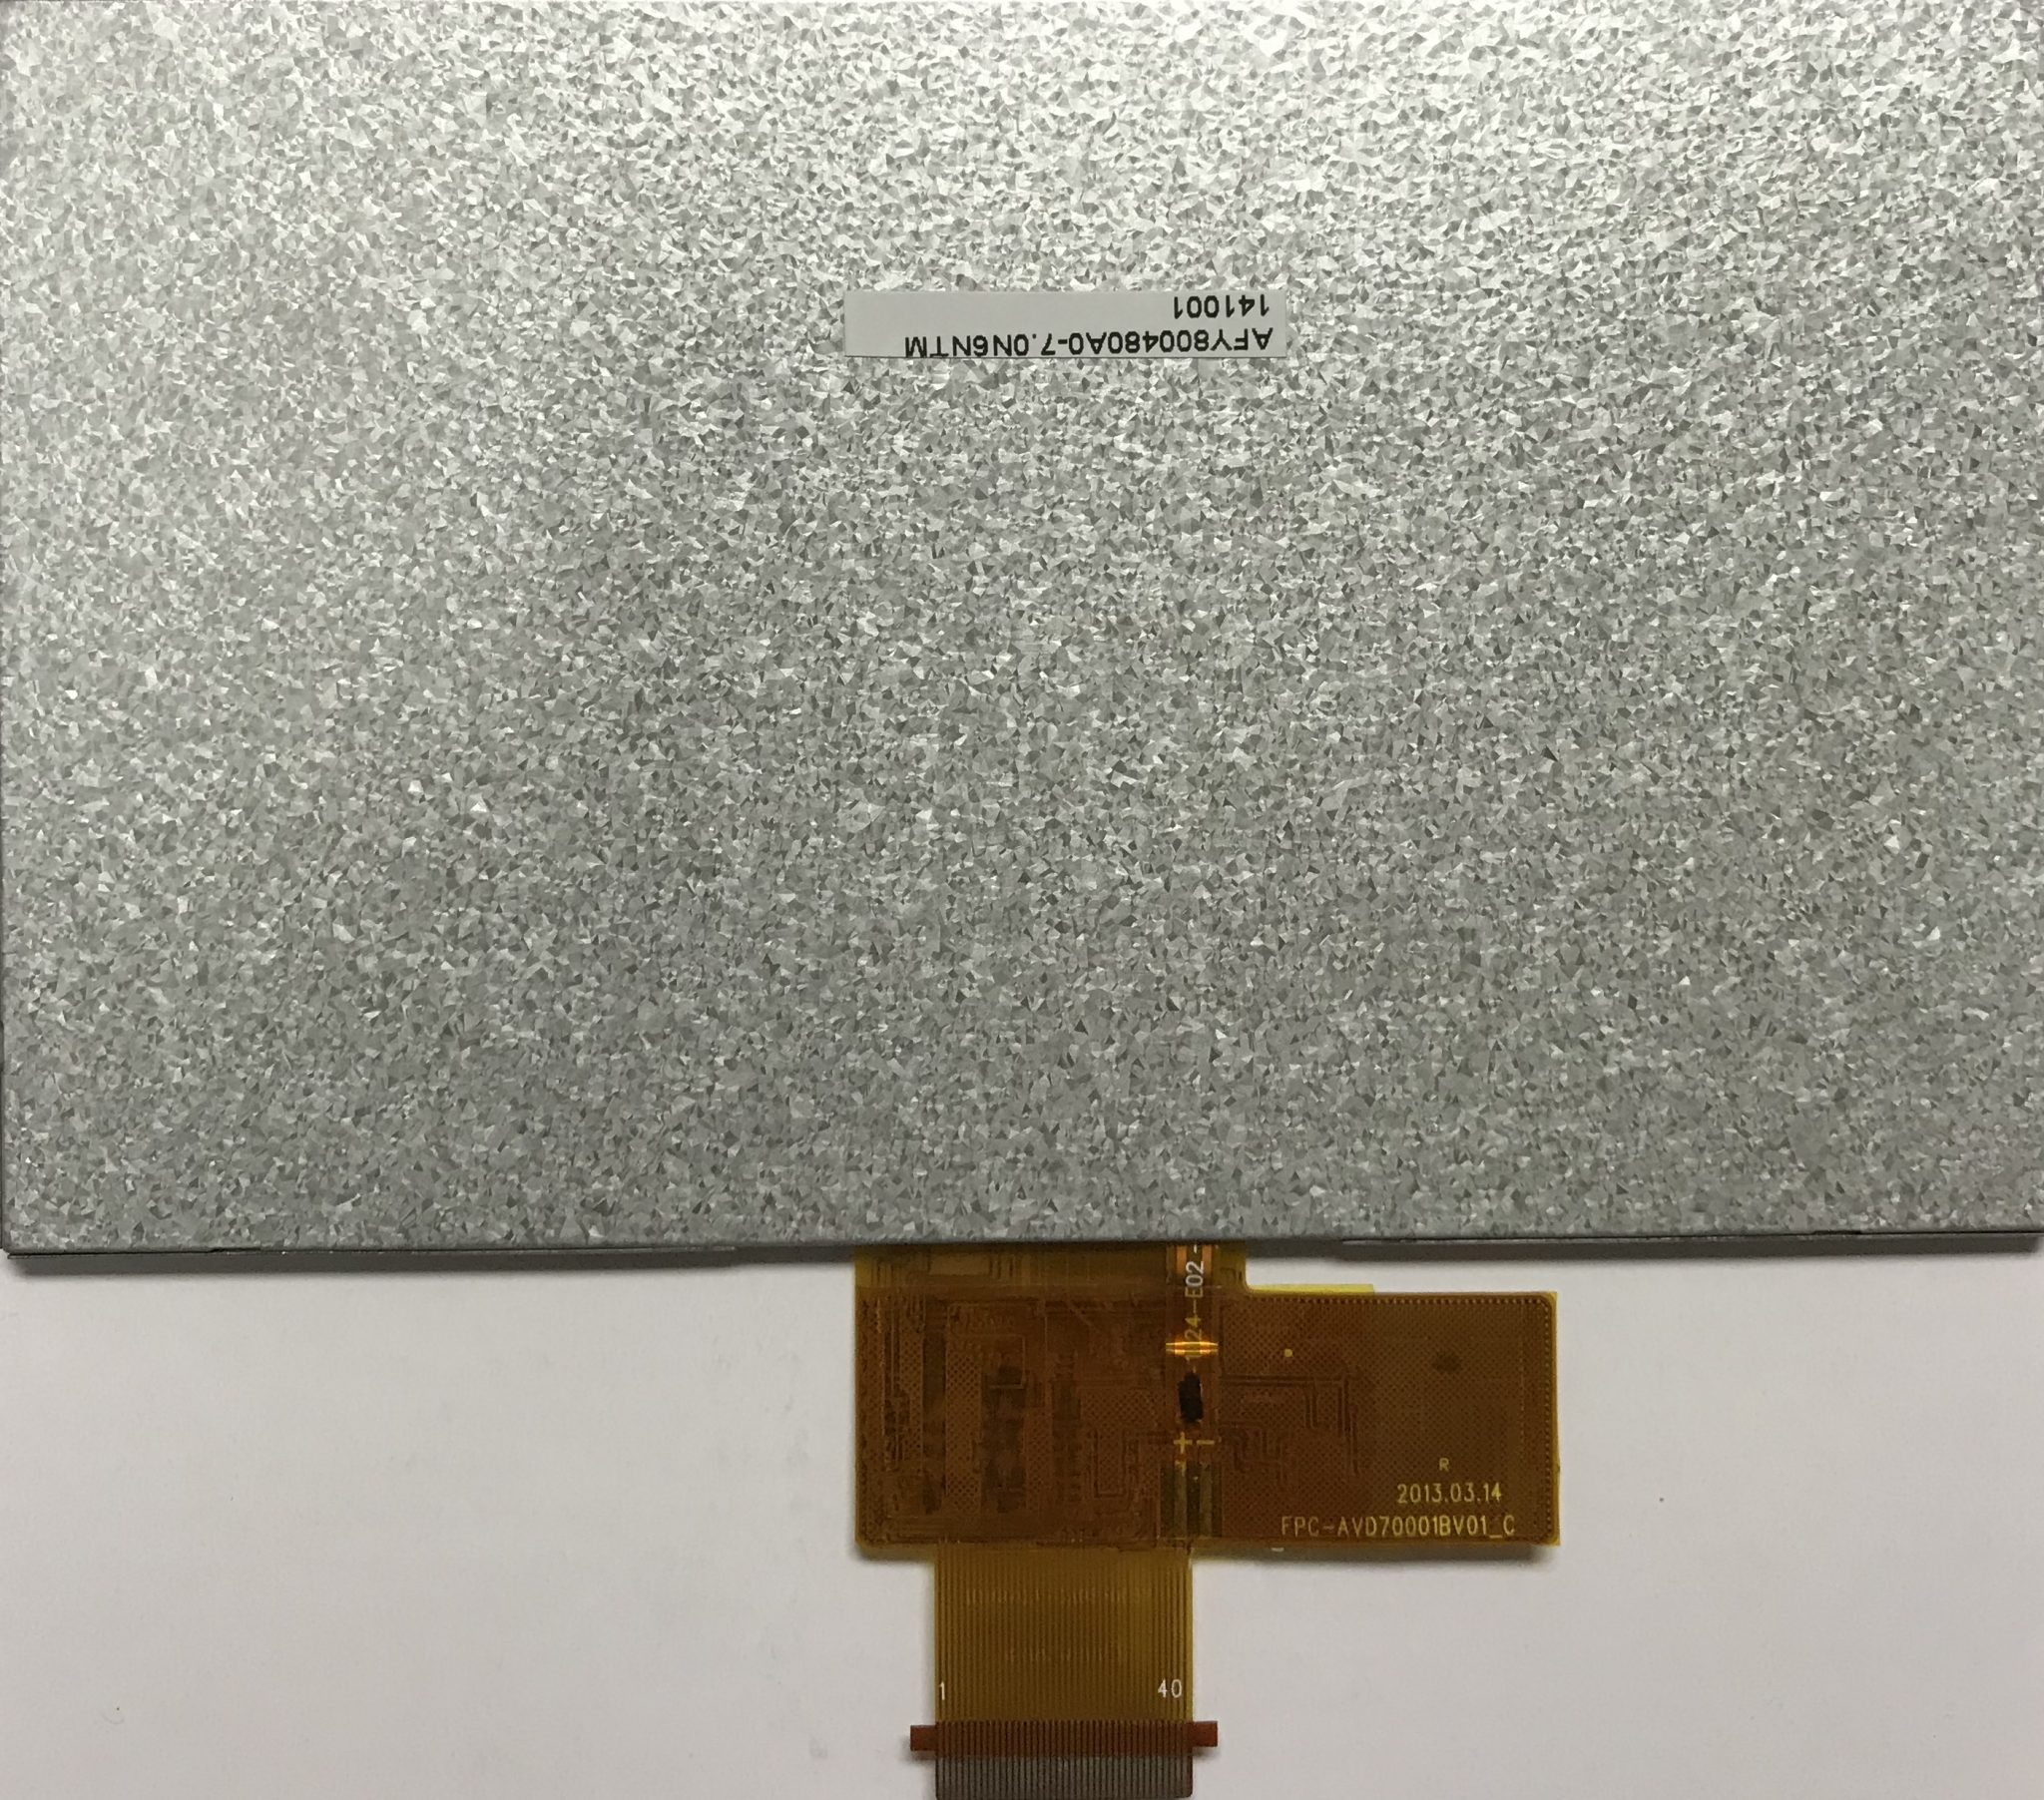 7 inch 800480 color TFT LCD display backside